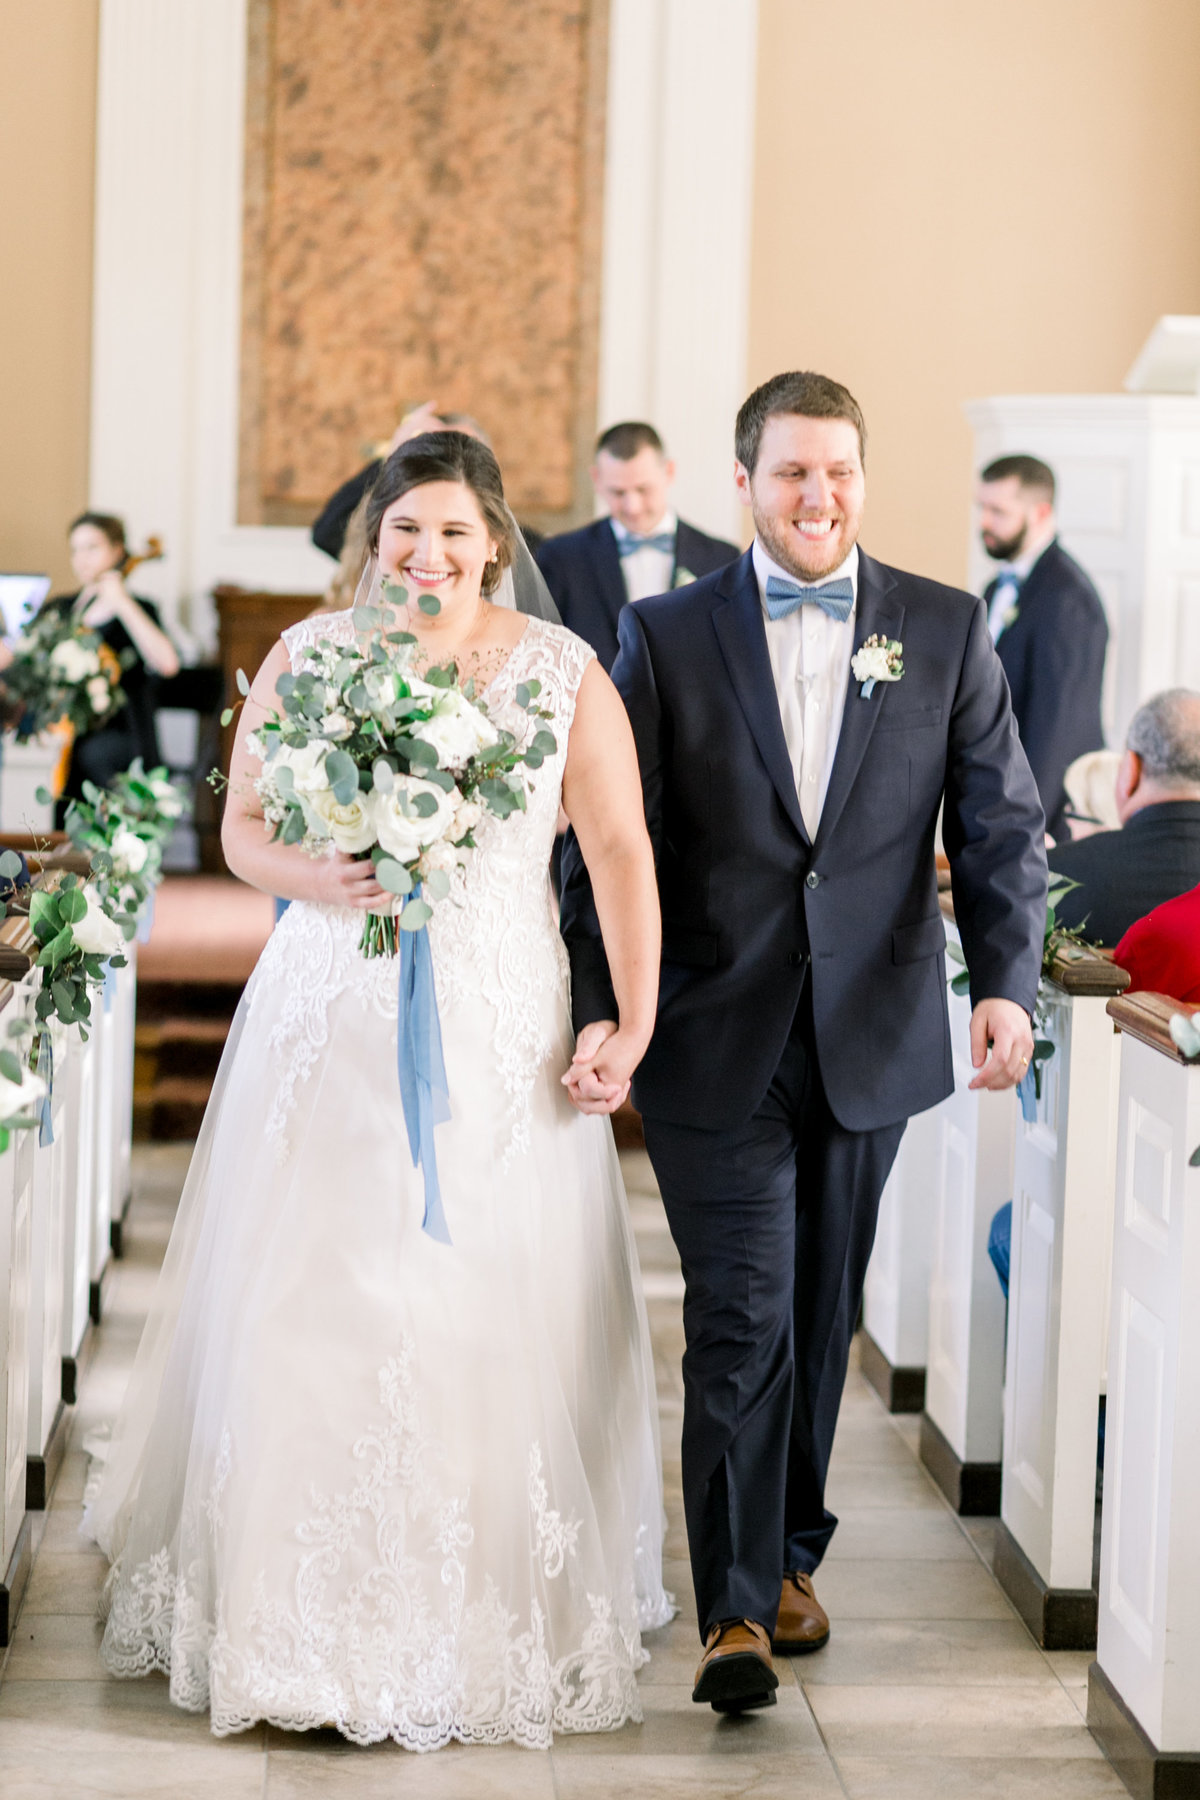 Bride and groom walking down the aisle after there ceremony in Oxford, Ohio